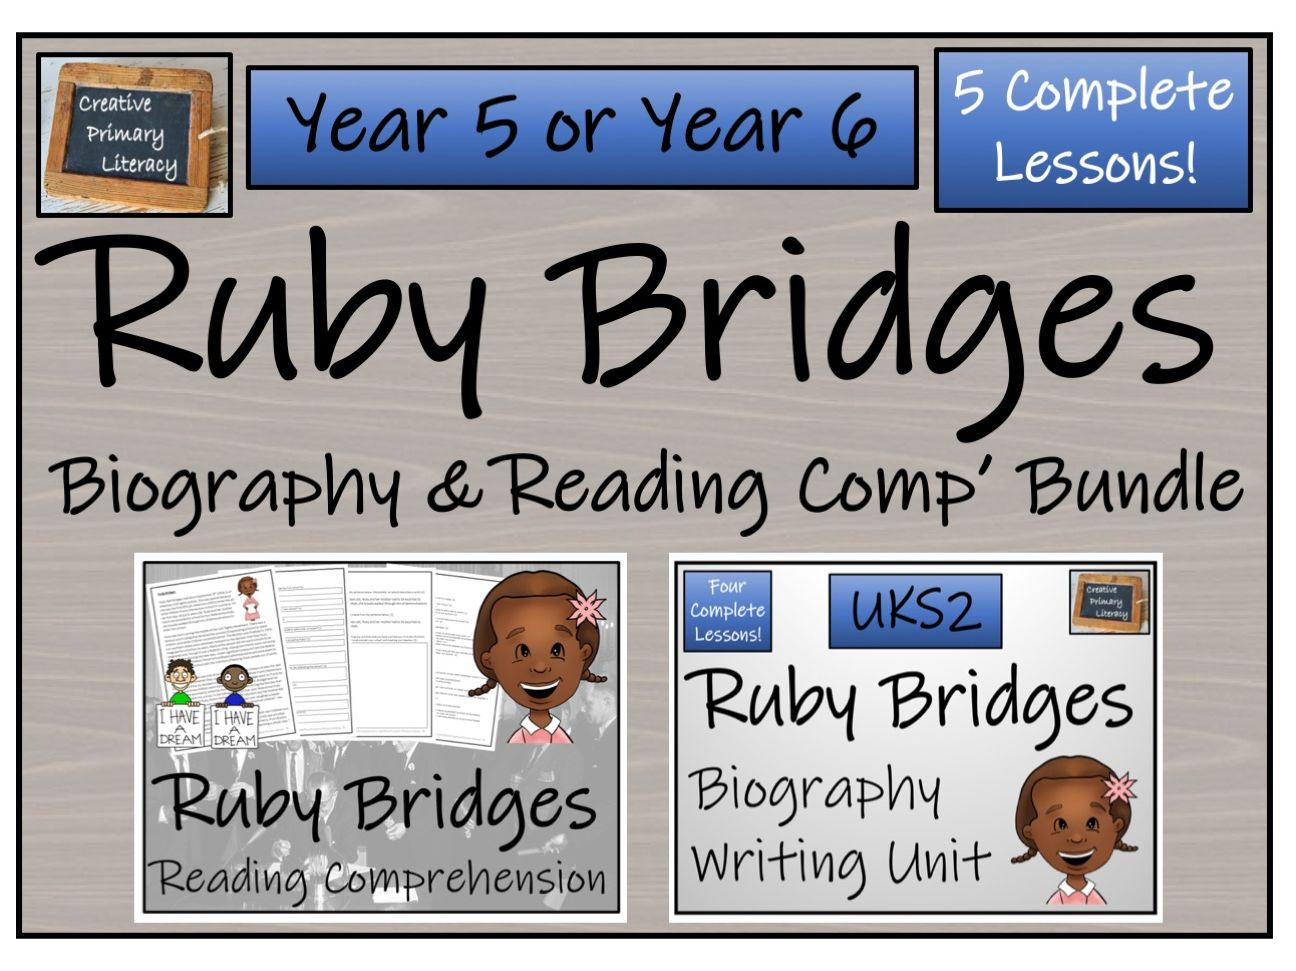 UKS2 History - Ruby Bridges Reading Comprehension & Biography Bundle